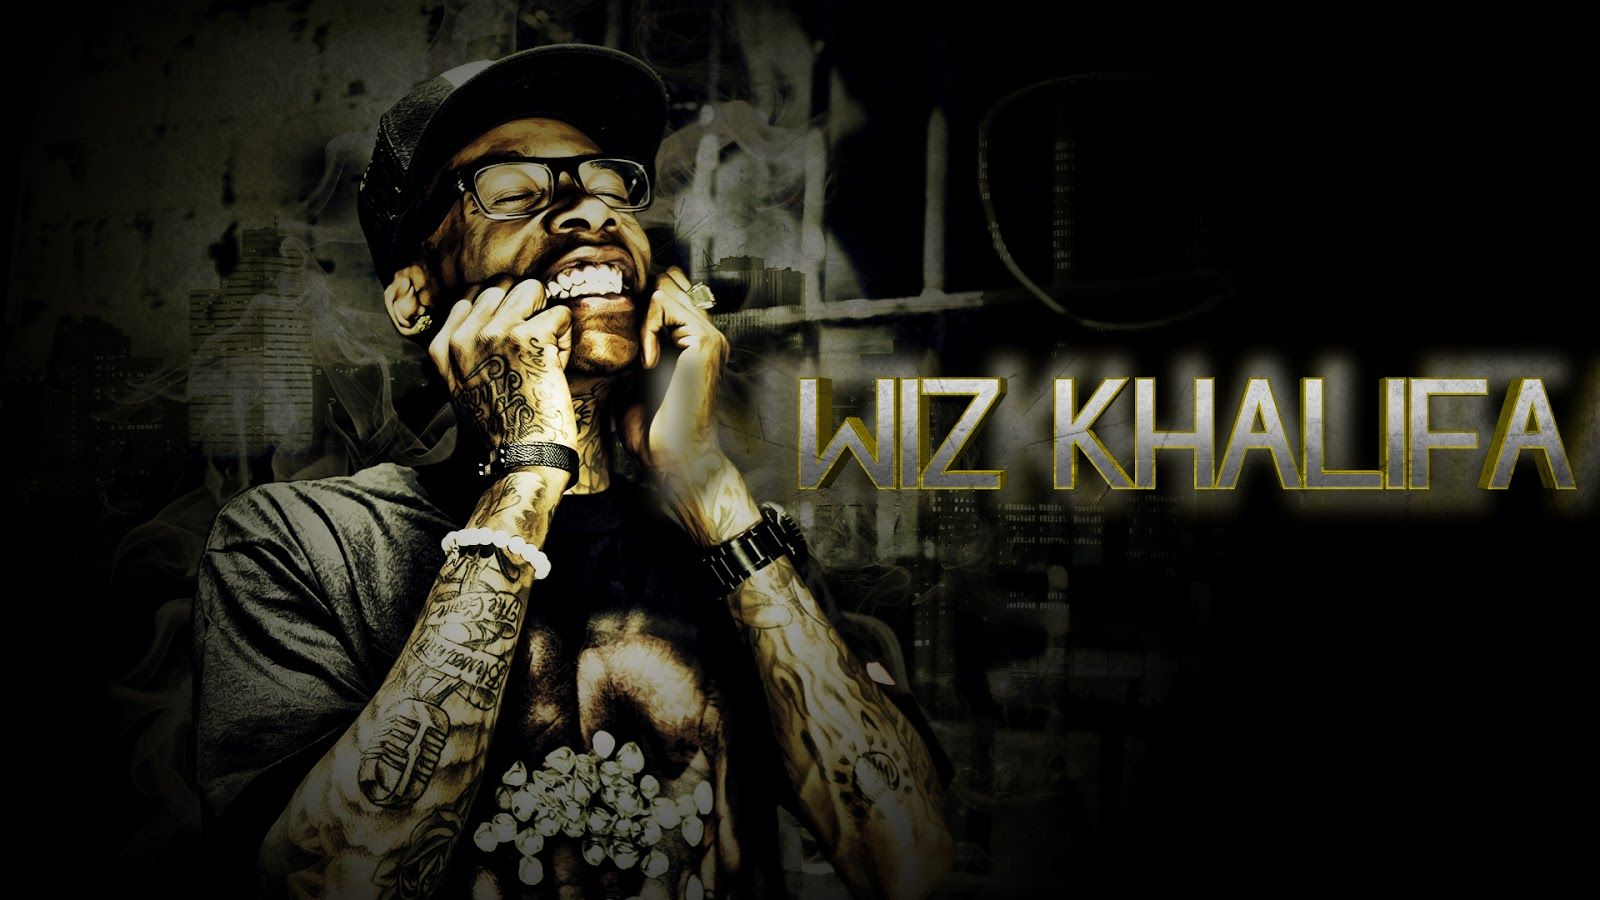 Wallpaper iphone wiz khalifa - Wiz Khalifa Quotes Iphone Wallpaper Wiz Wallpaper Black Wallpapers For Desktop